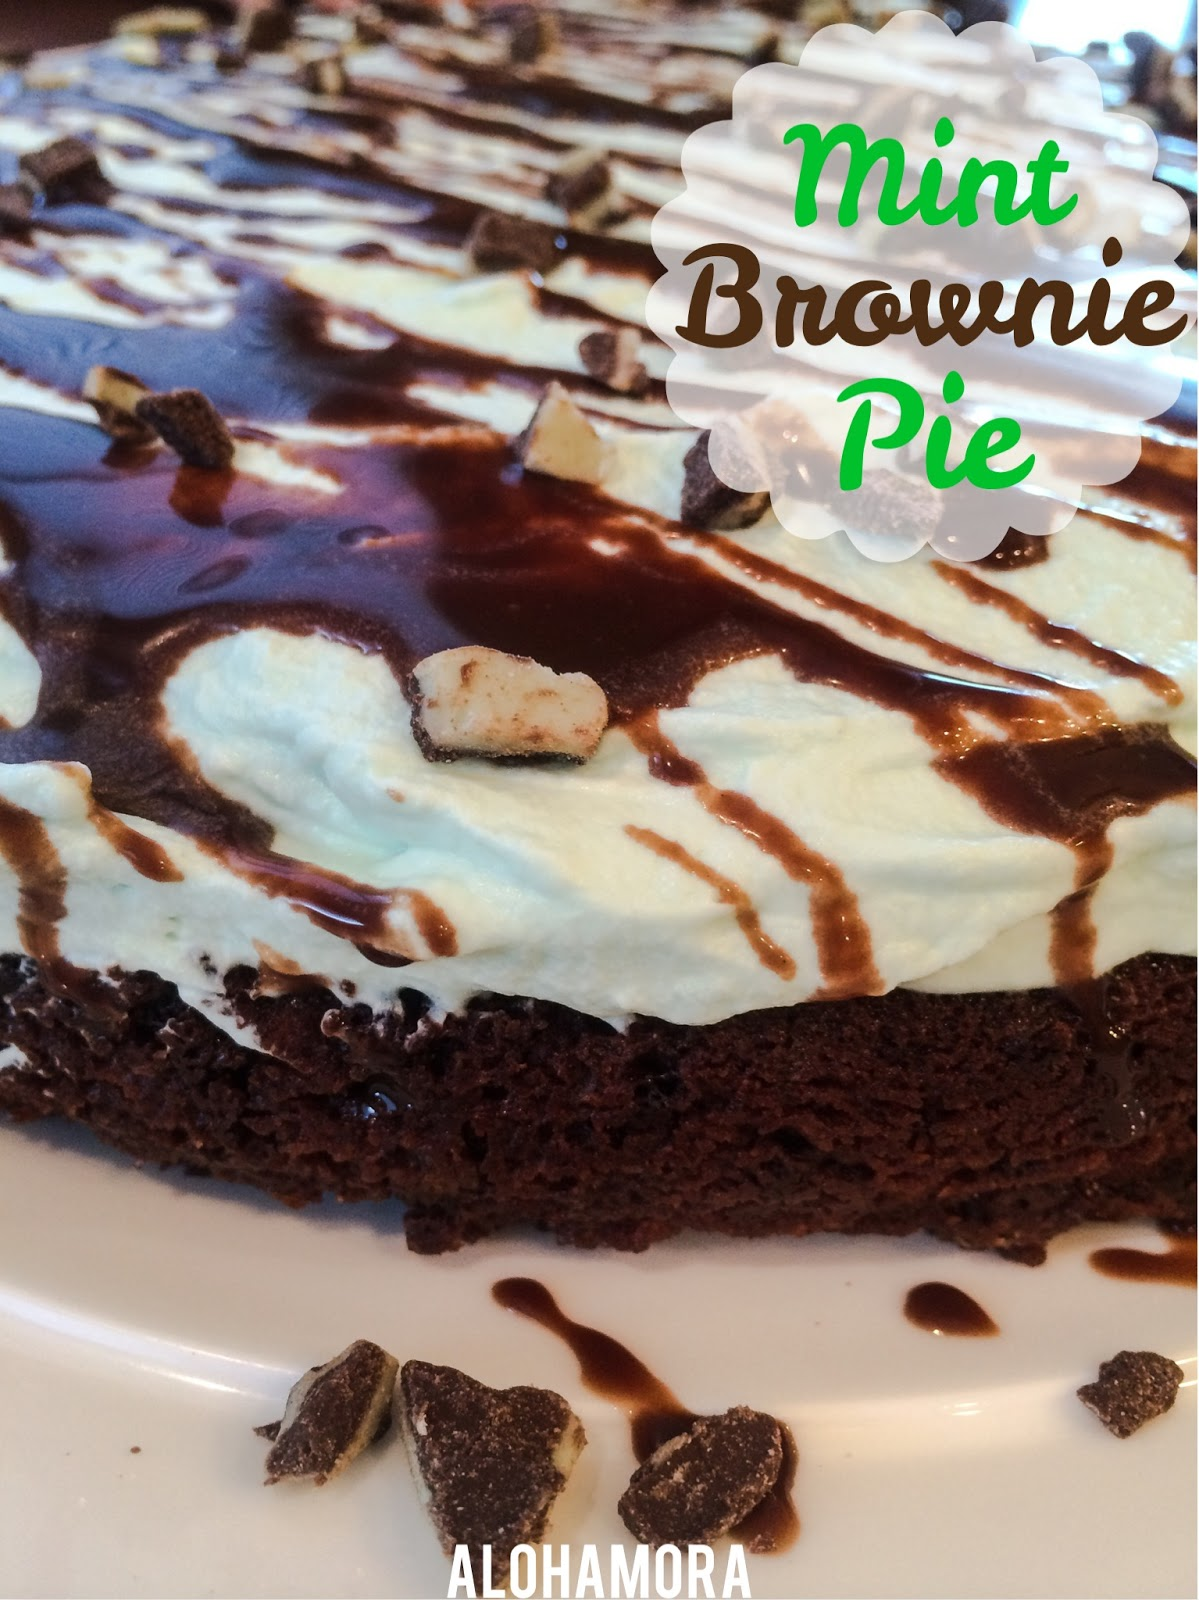 Mint Brownie Pie.  Absolutely delicious mint chocolate dessert recipe that's easy to make using a brownie mix.  A mint chocolate ganache tops the green mint whipped cream.  A festive and tasty St. Patrick's Day treat. Yummy! Alohamora Open a Book http://www.alohamoraopenabook.blogspot.com/